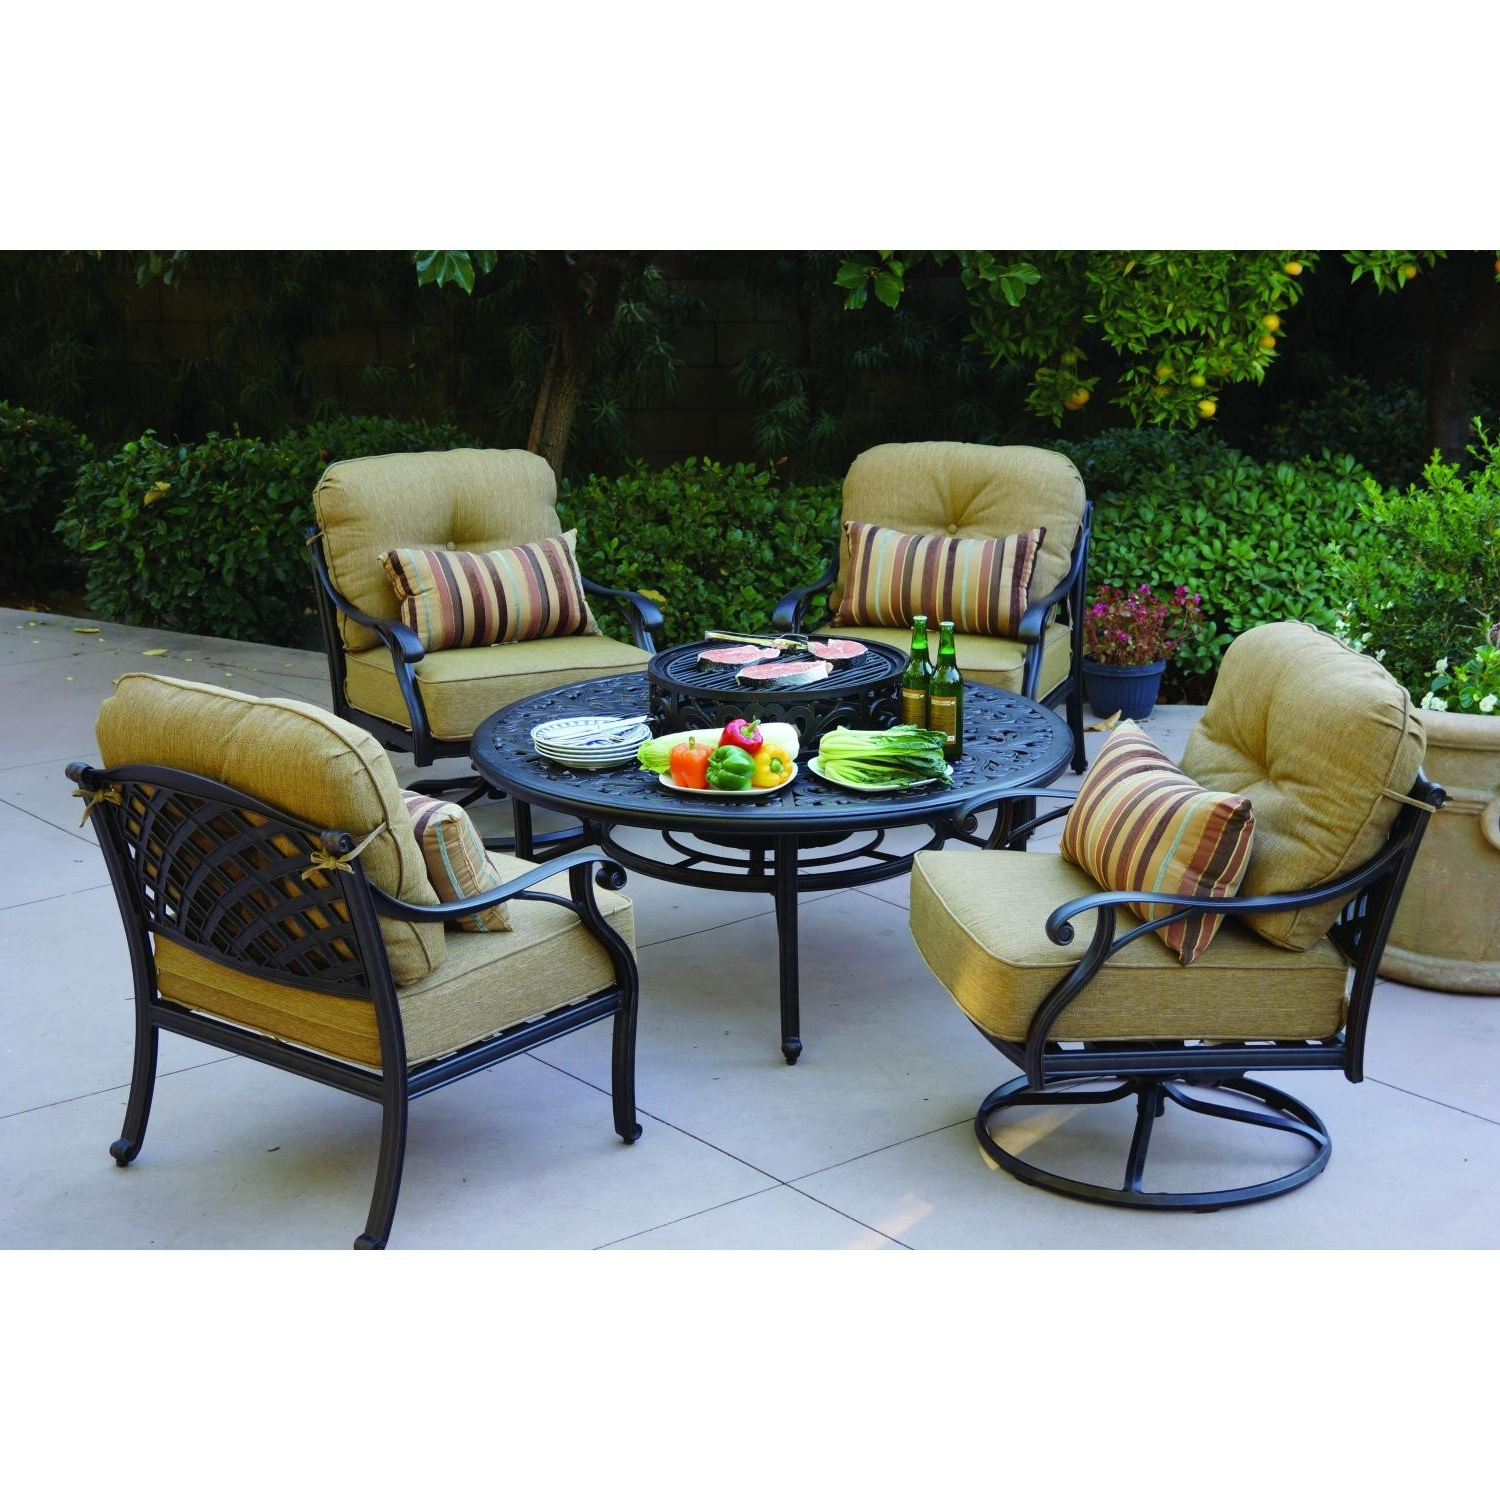 Cheap Patio Furniture Sets Under 300 Outdoor Conversation Sets With With Regard To Widely Used Lowes Patio Furniture Conversation Sets (View 1 of 15)